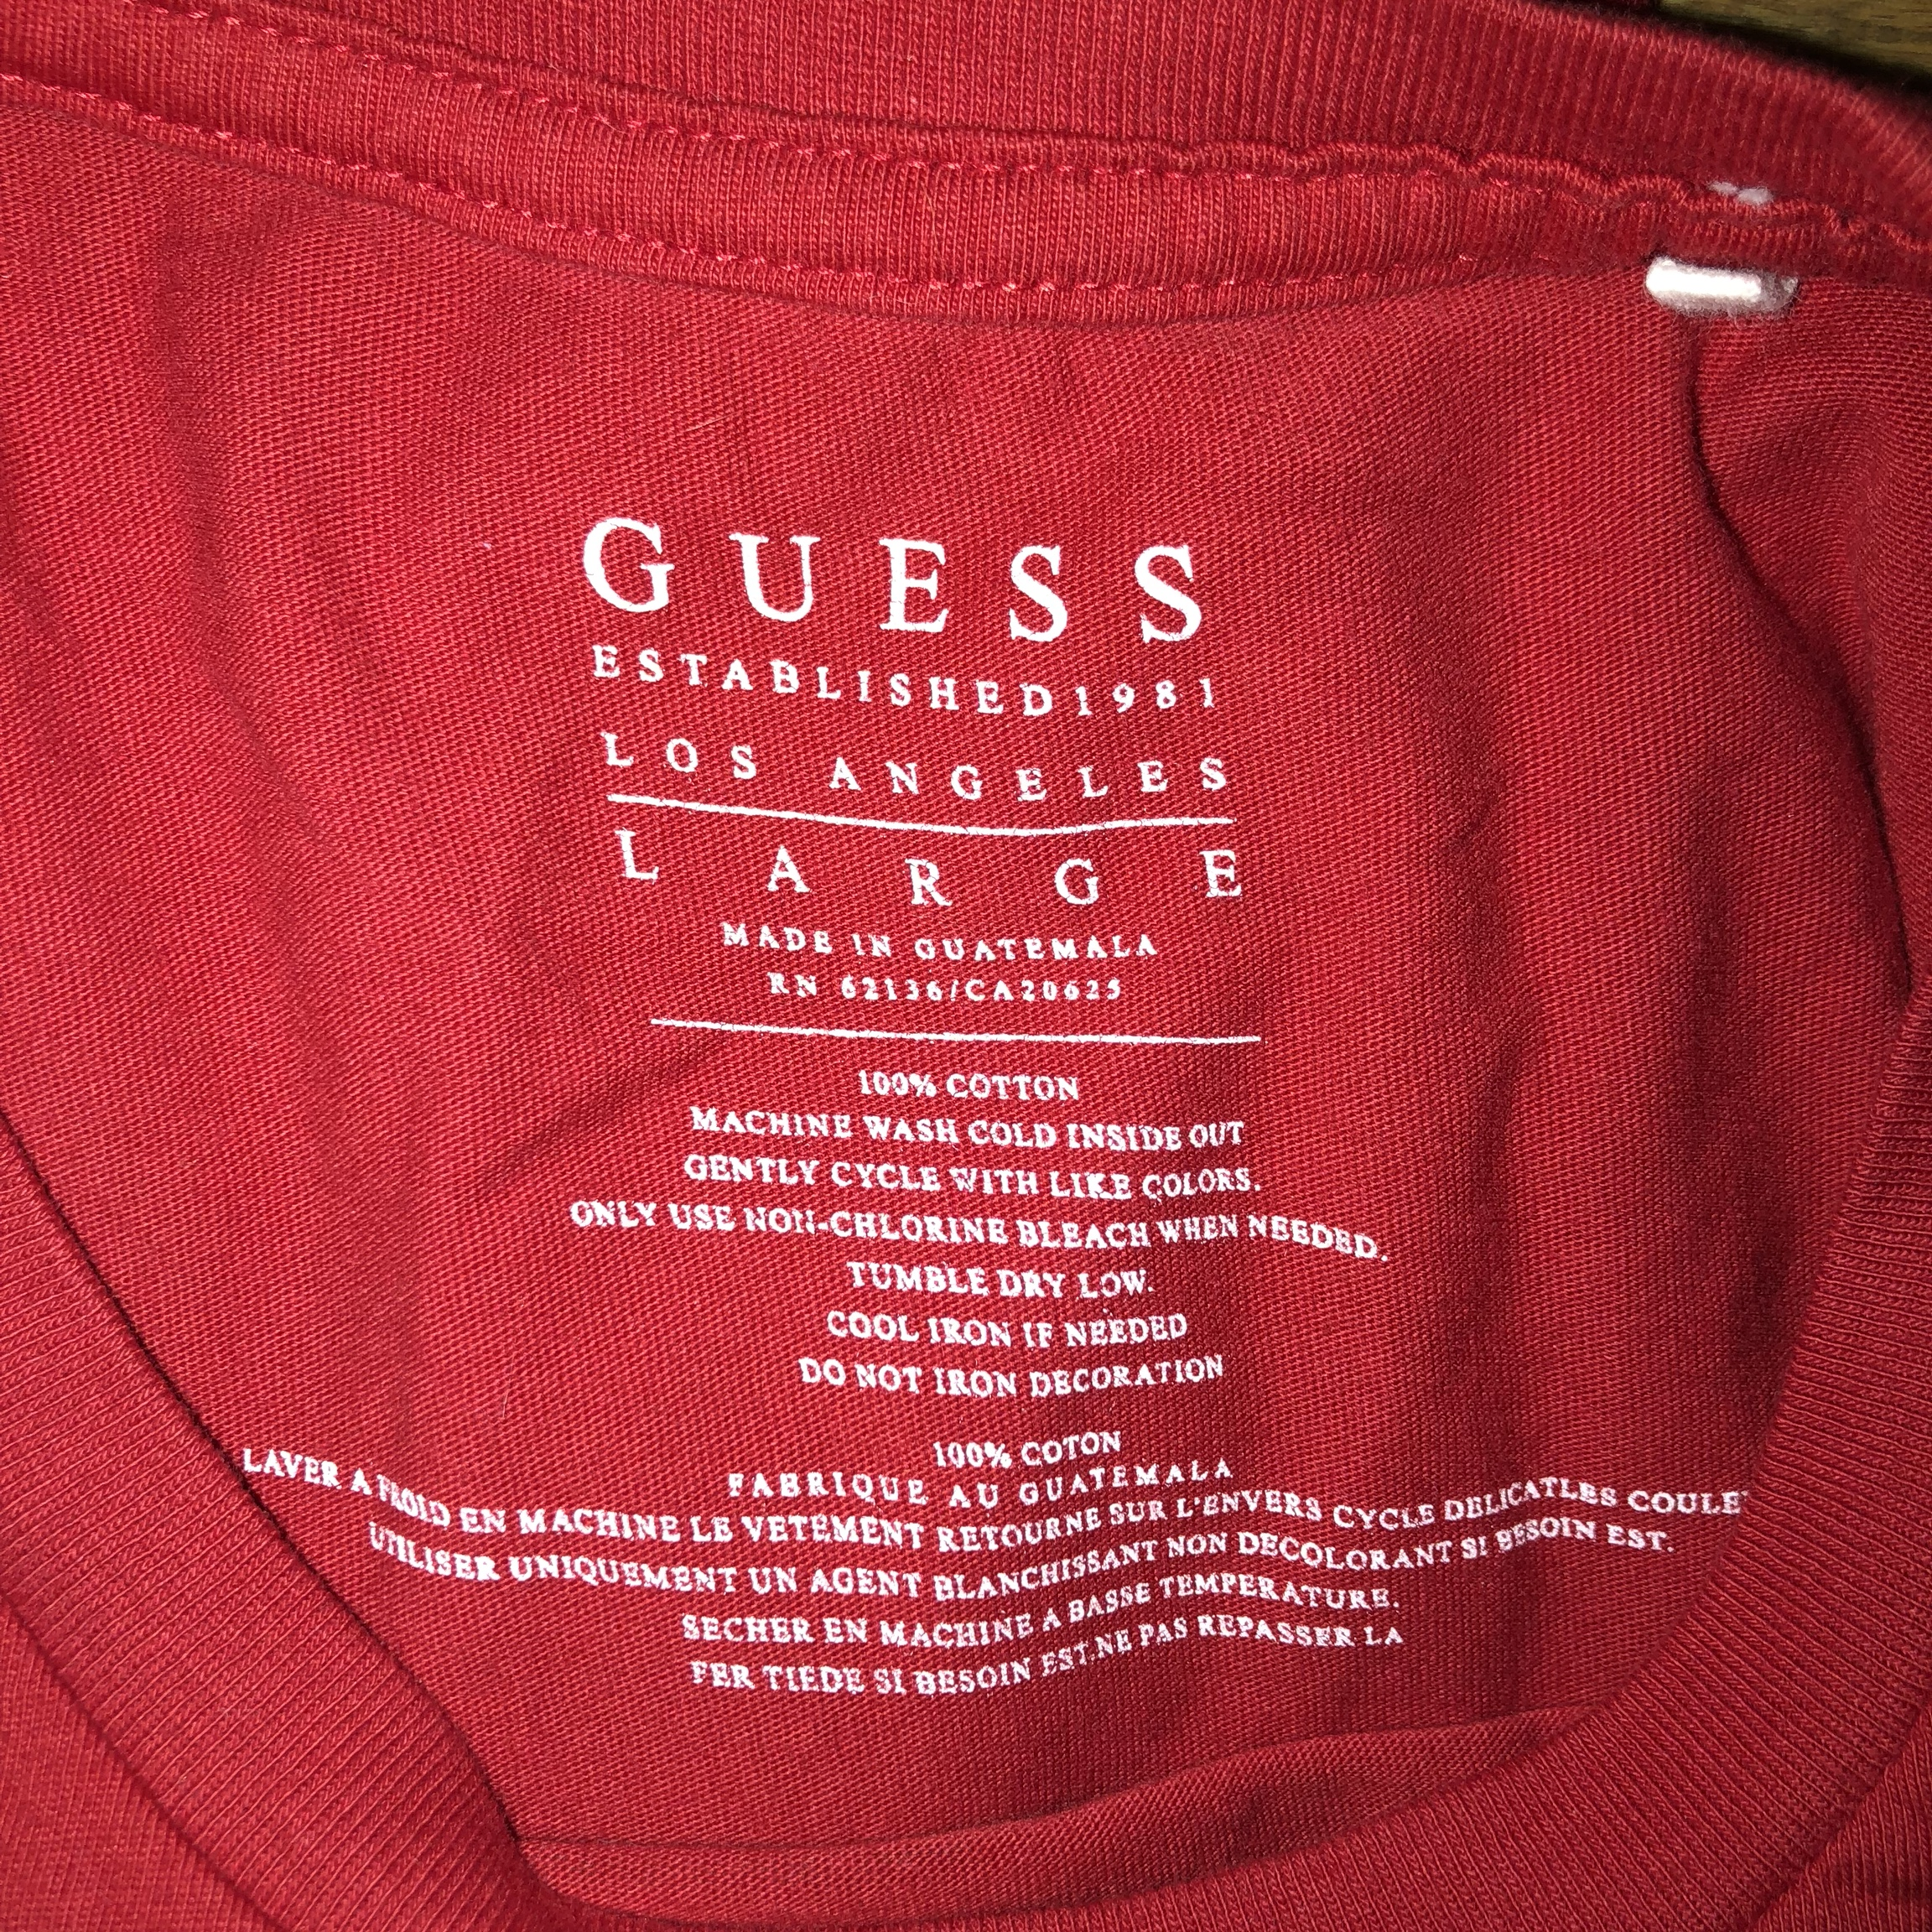 Laver Le Blanc Temperature guess t-shirt original guess tee with the front - depop